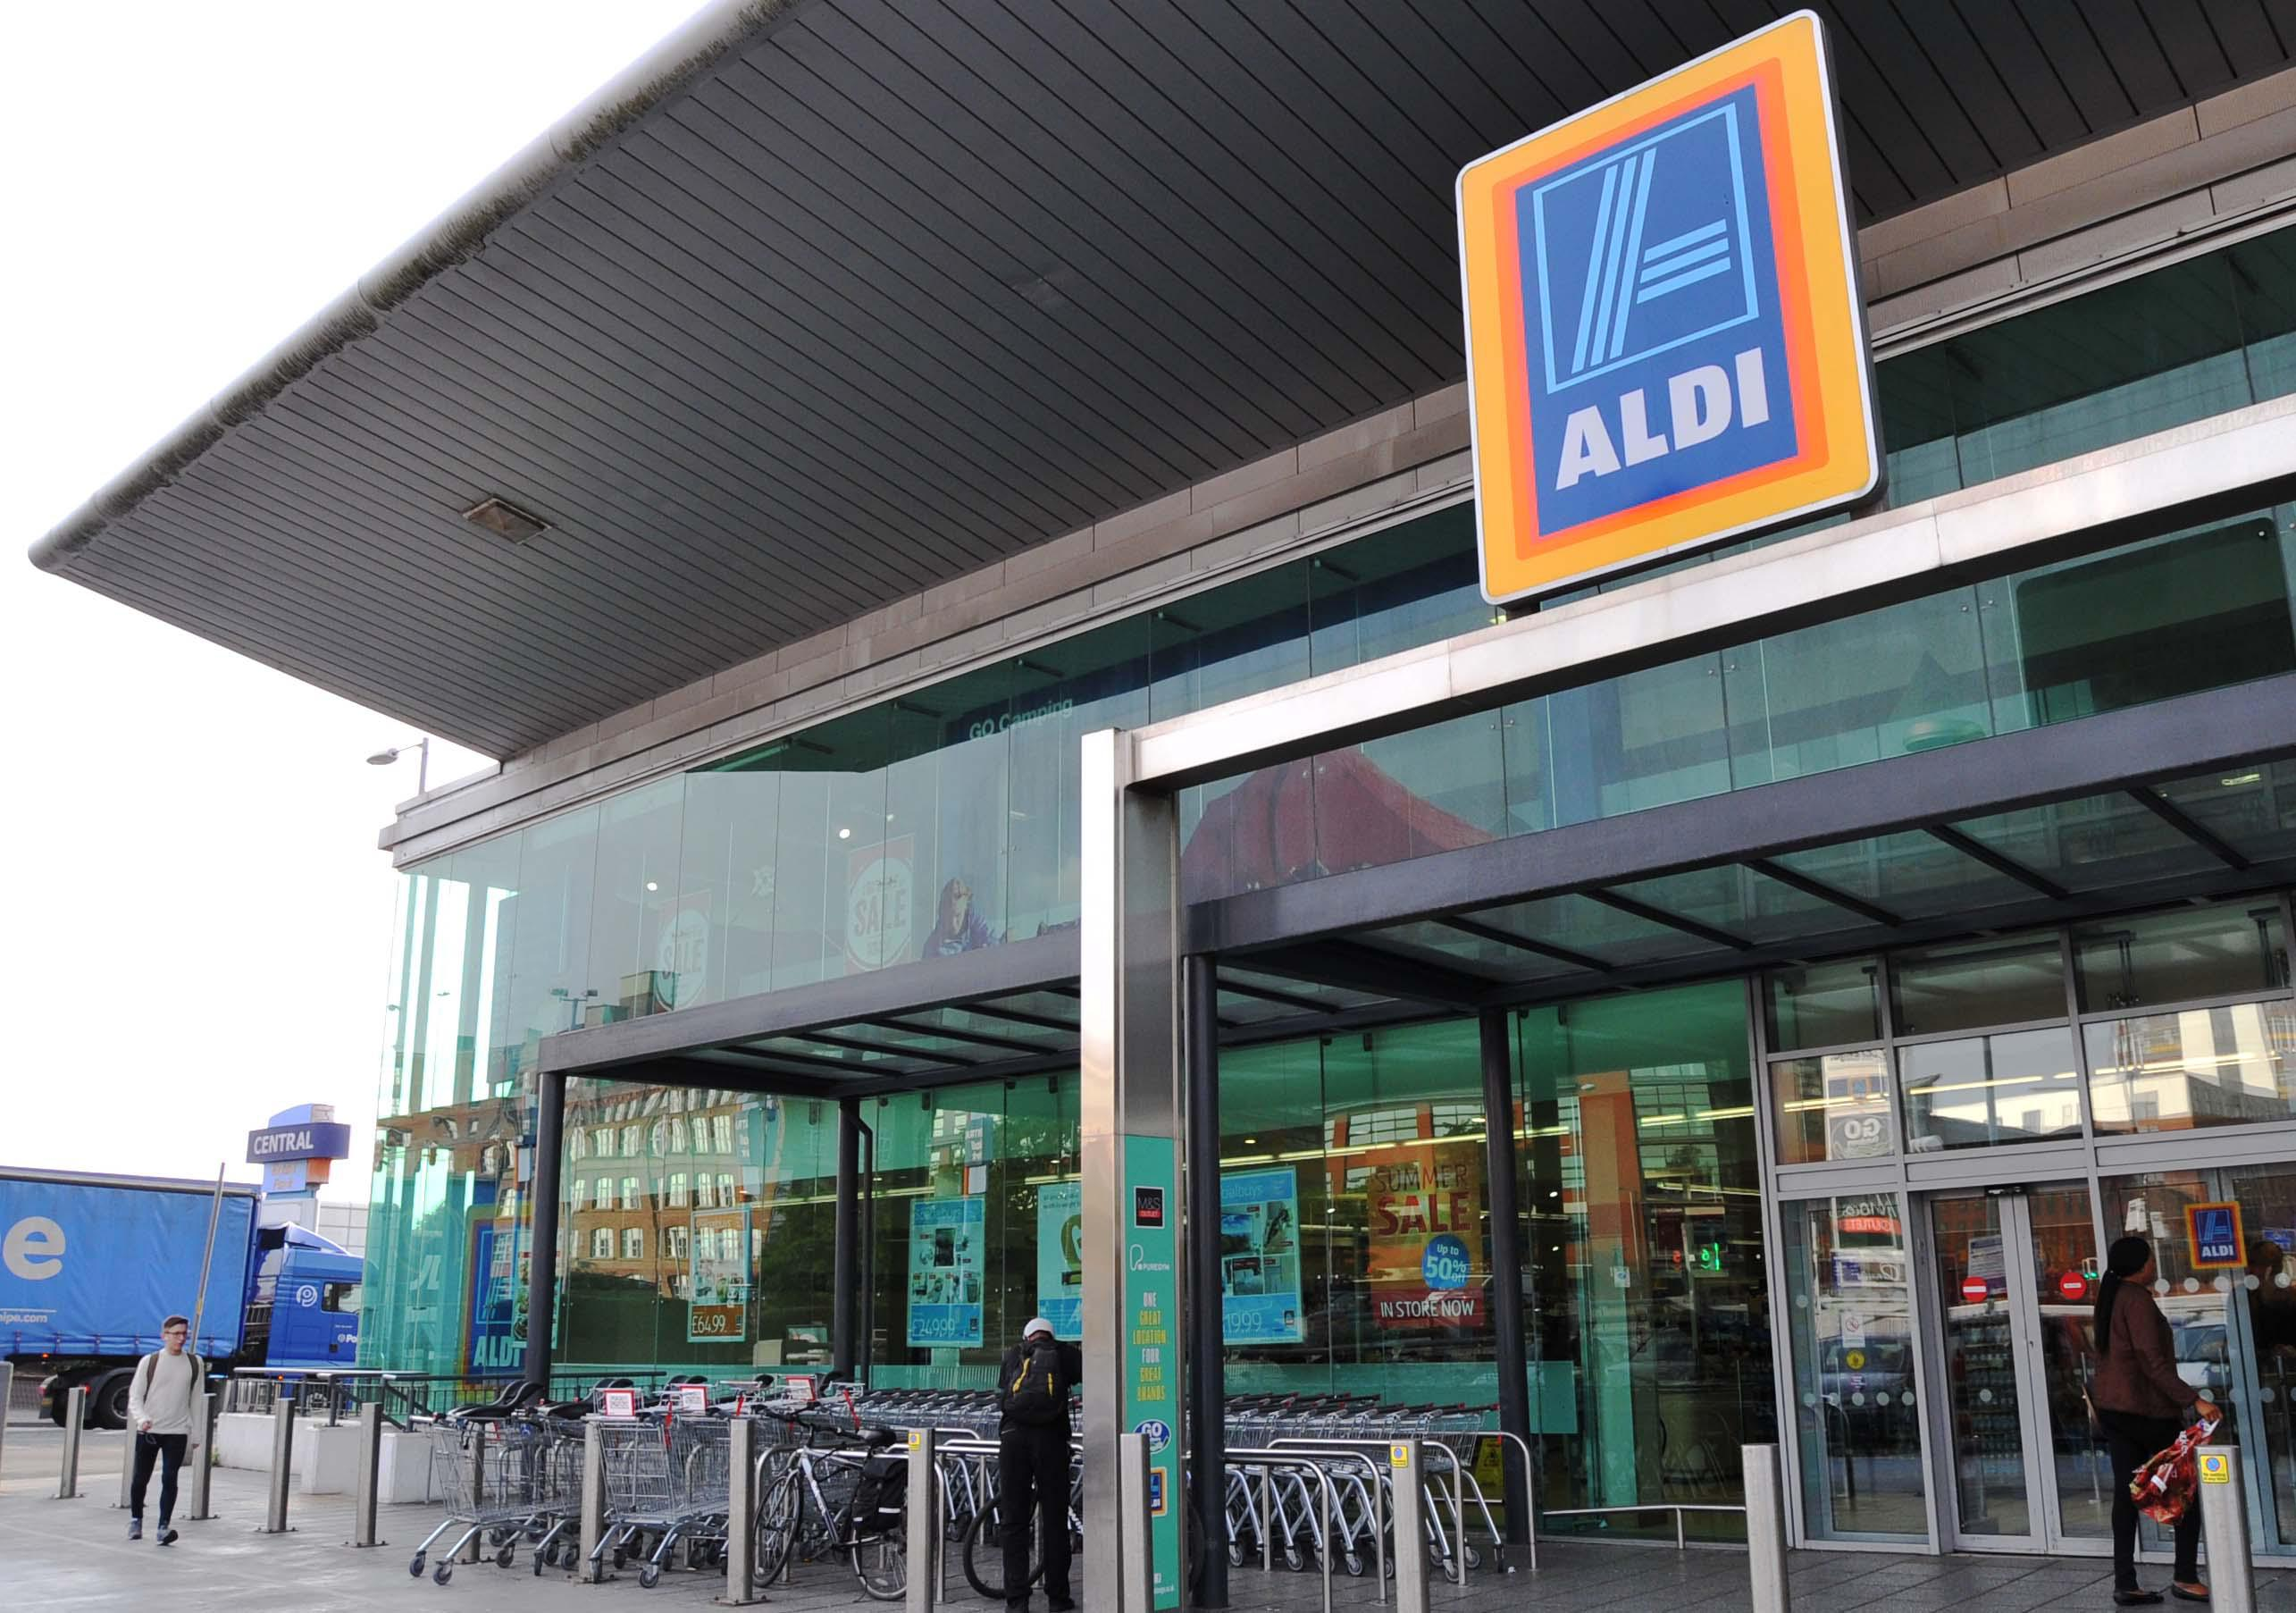 Aldi Shampoo Range Aldi Shoppers These Are The Secret Tips And Tricks You Need To